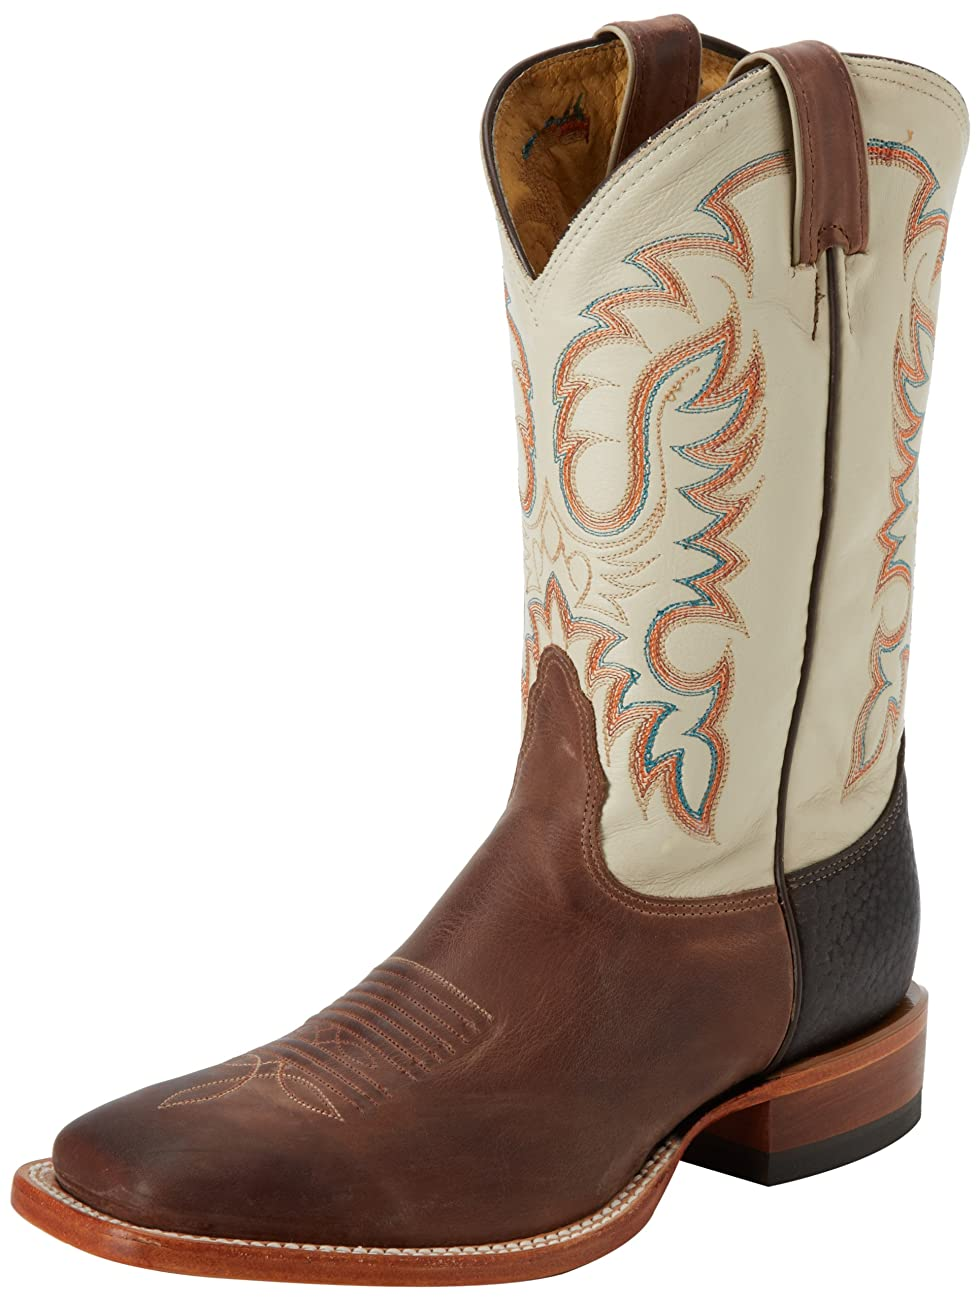 Nocona Boots Men's MD2735 11 Inch Boot 0